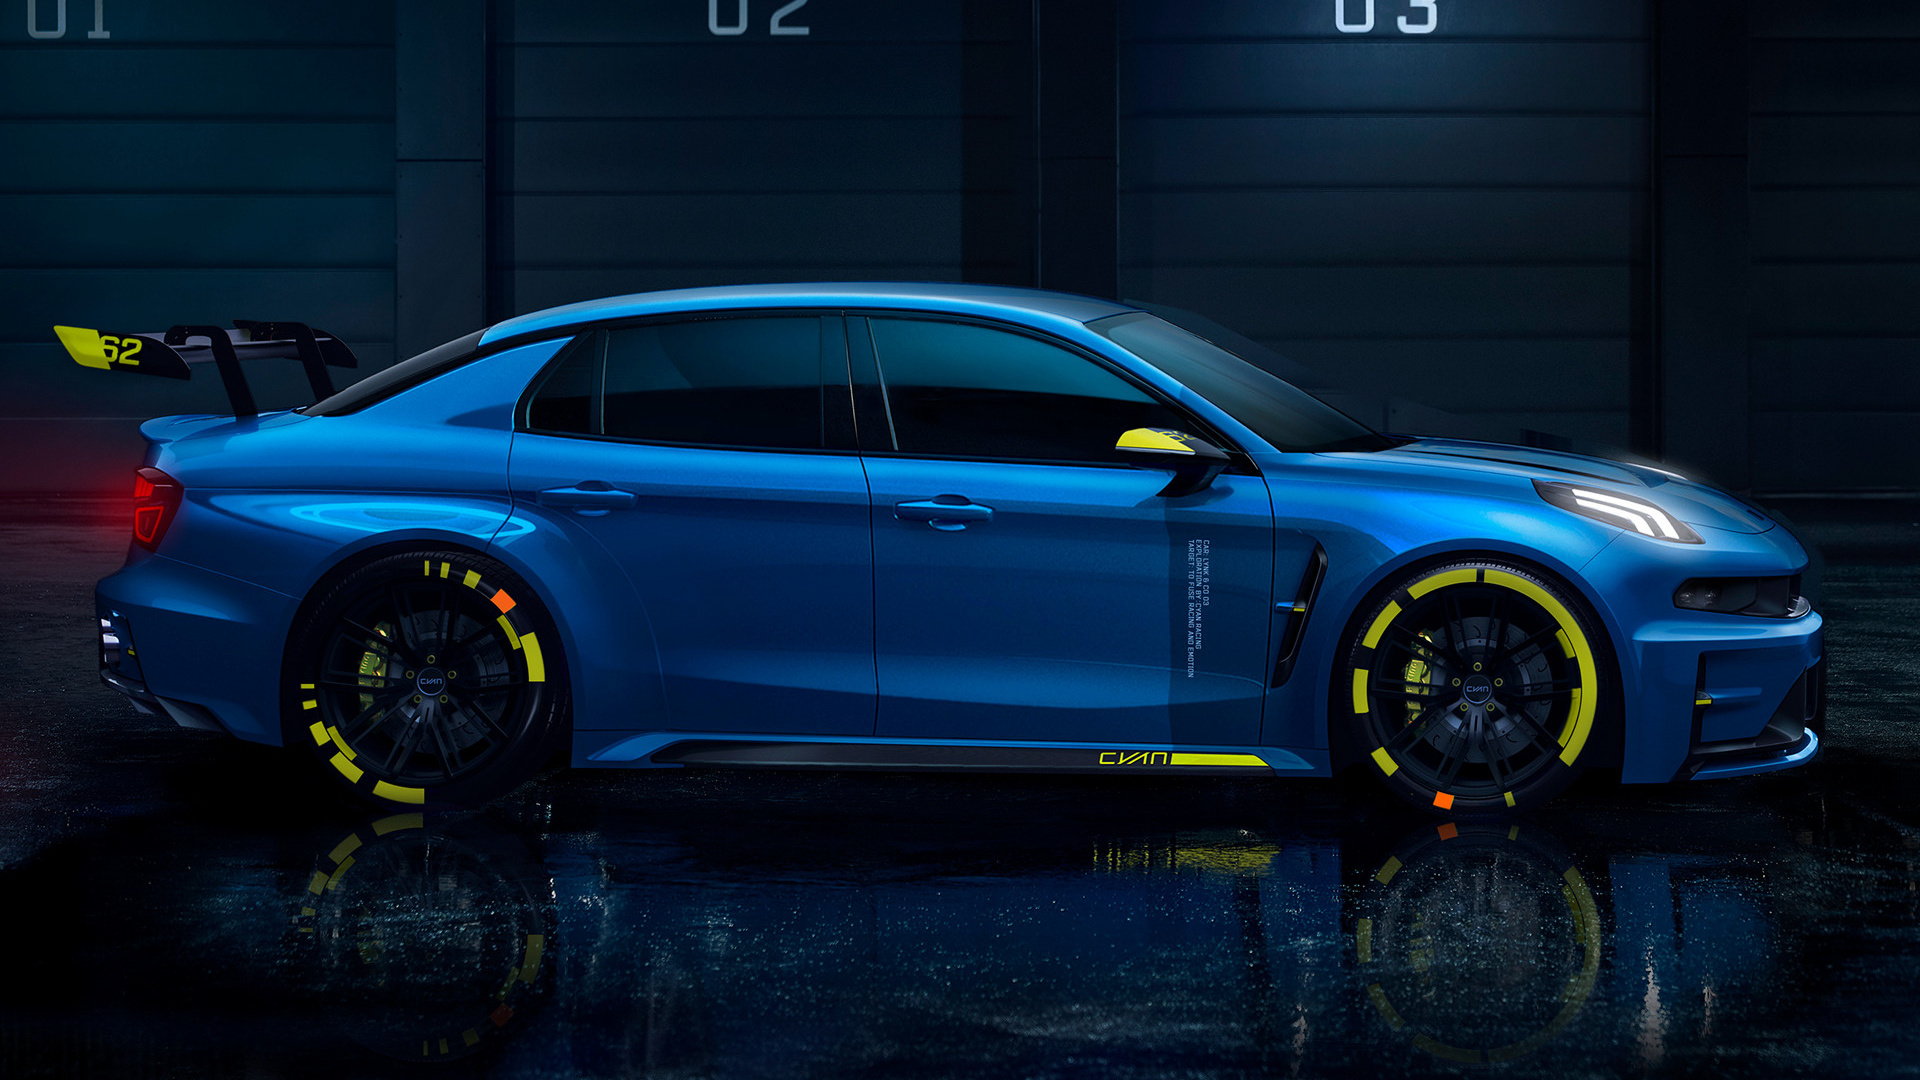 2018 Lynk & Co 03 Cyan Concept - Wallpapers and HD Images ...